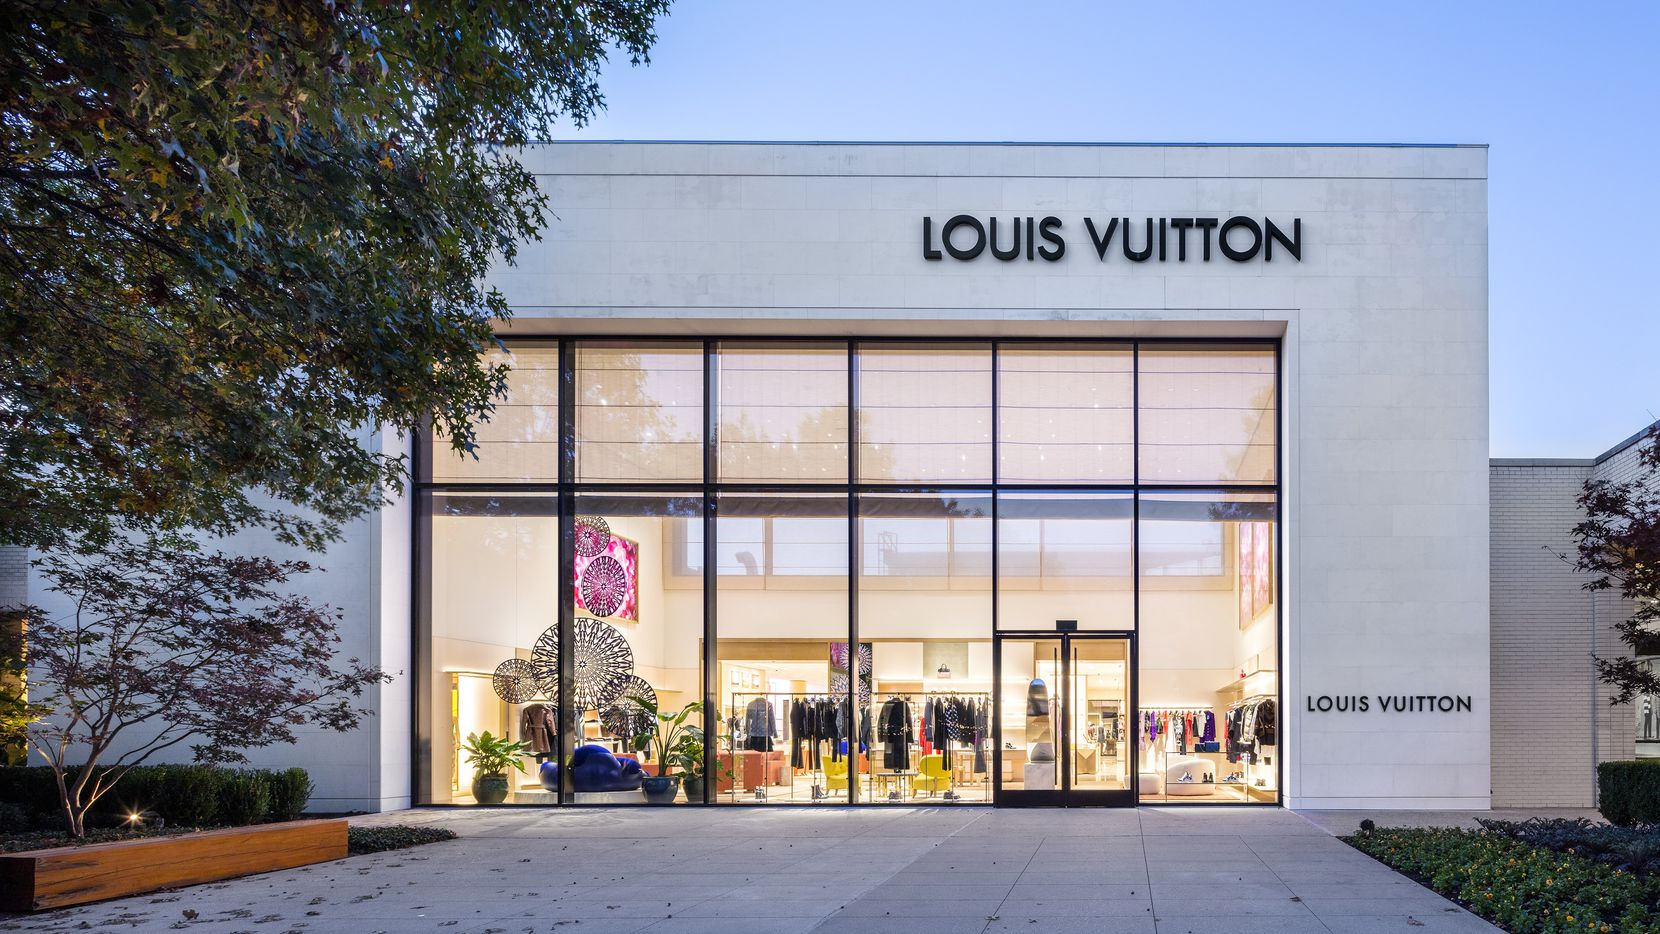 The interior park view of the new, larger Louis Vuitton store that opened in NorthPark Center on Saturday, Nov. 14, 2020.